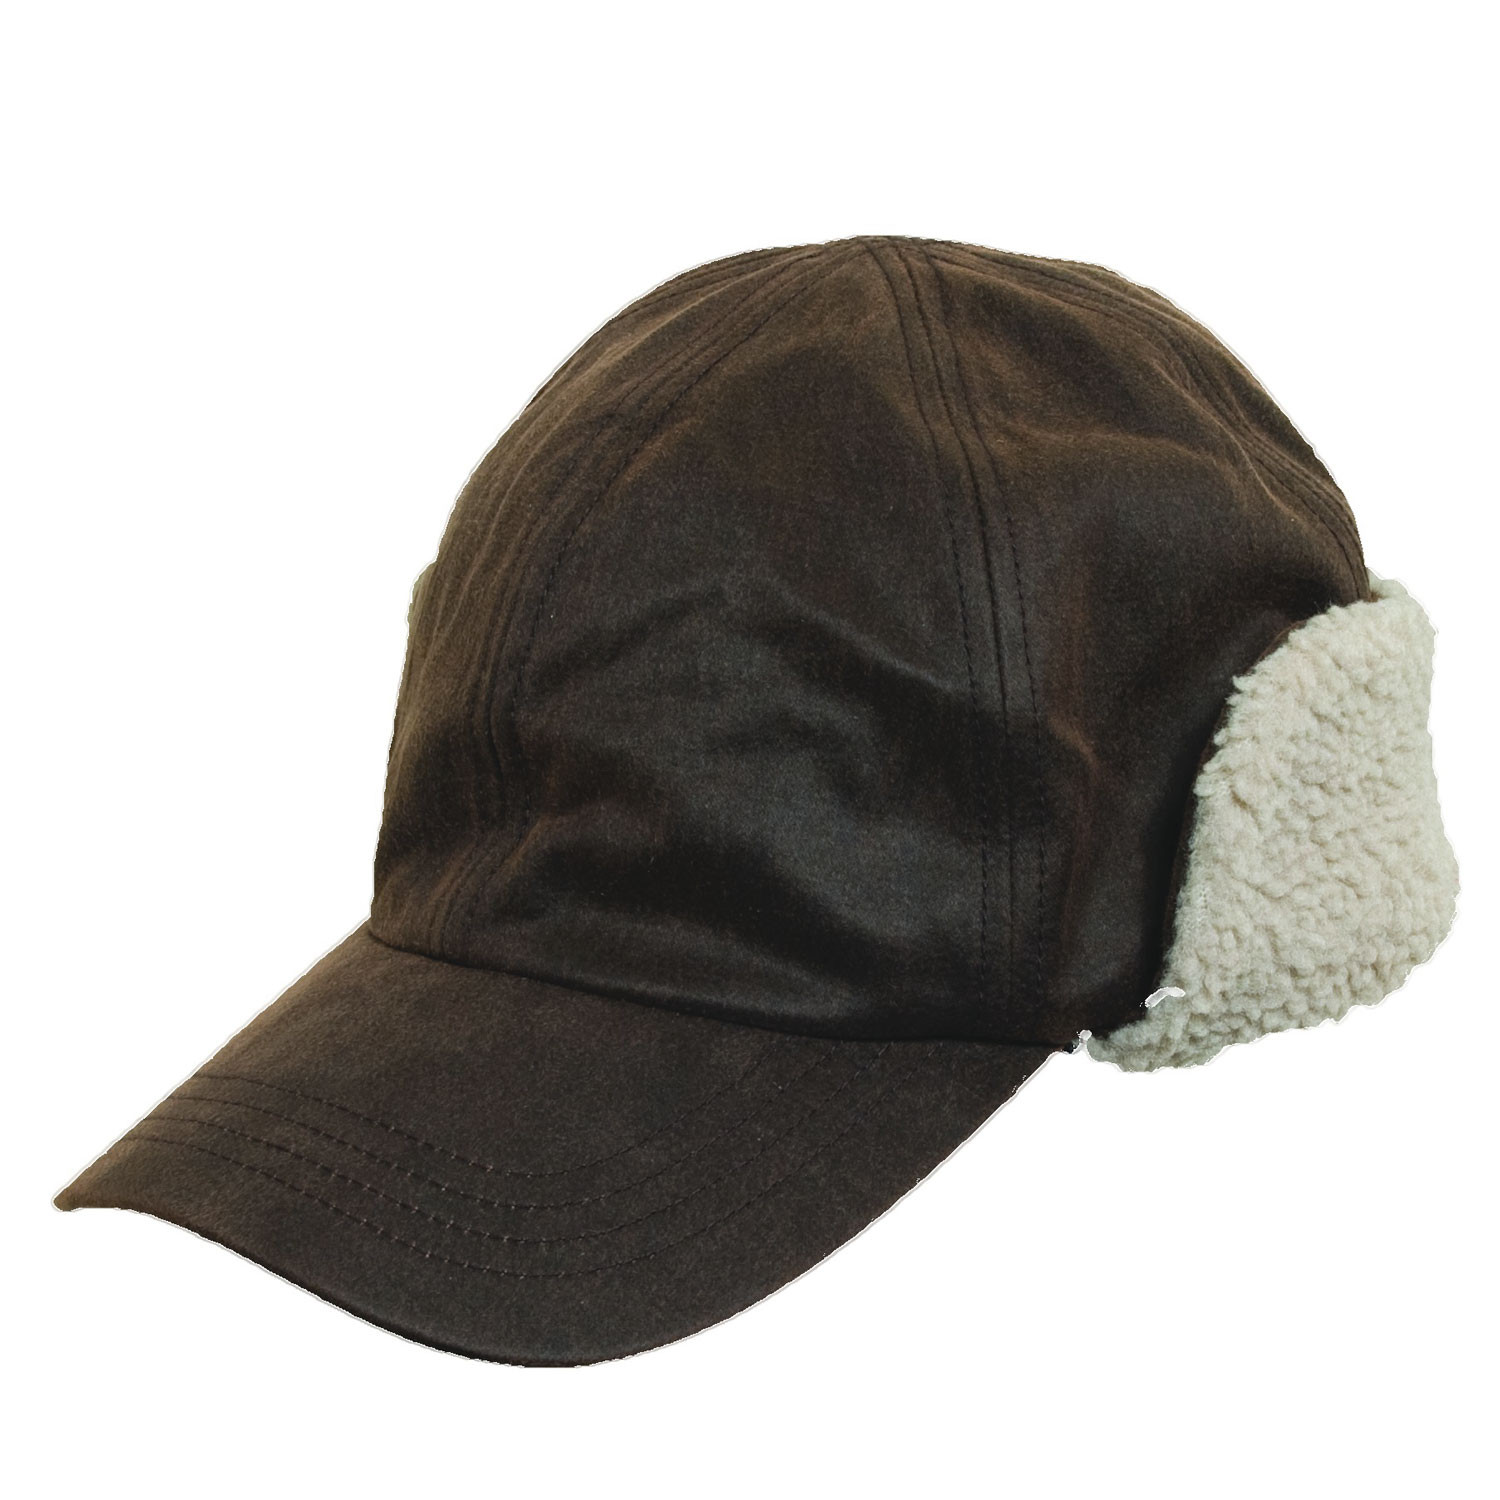 Hat with Ear Flaps New Weathered Cotton Winter Cap with Earflaps Of Top 42 Photos Hat with Ear Flaps